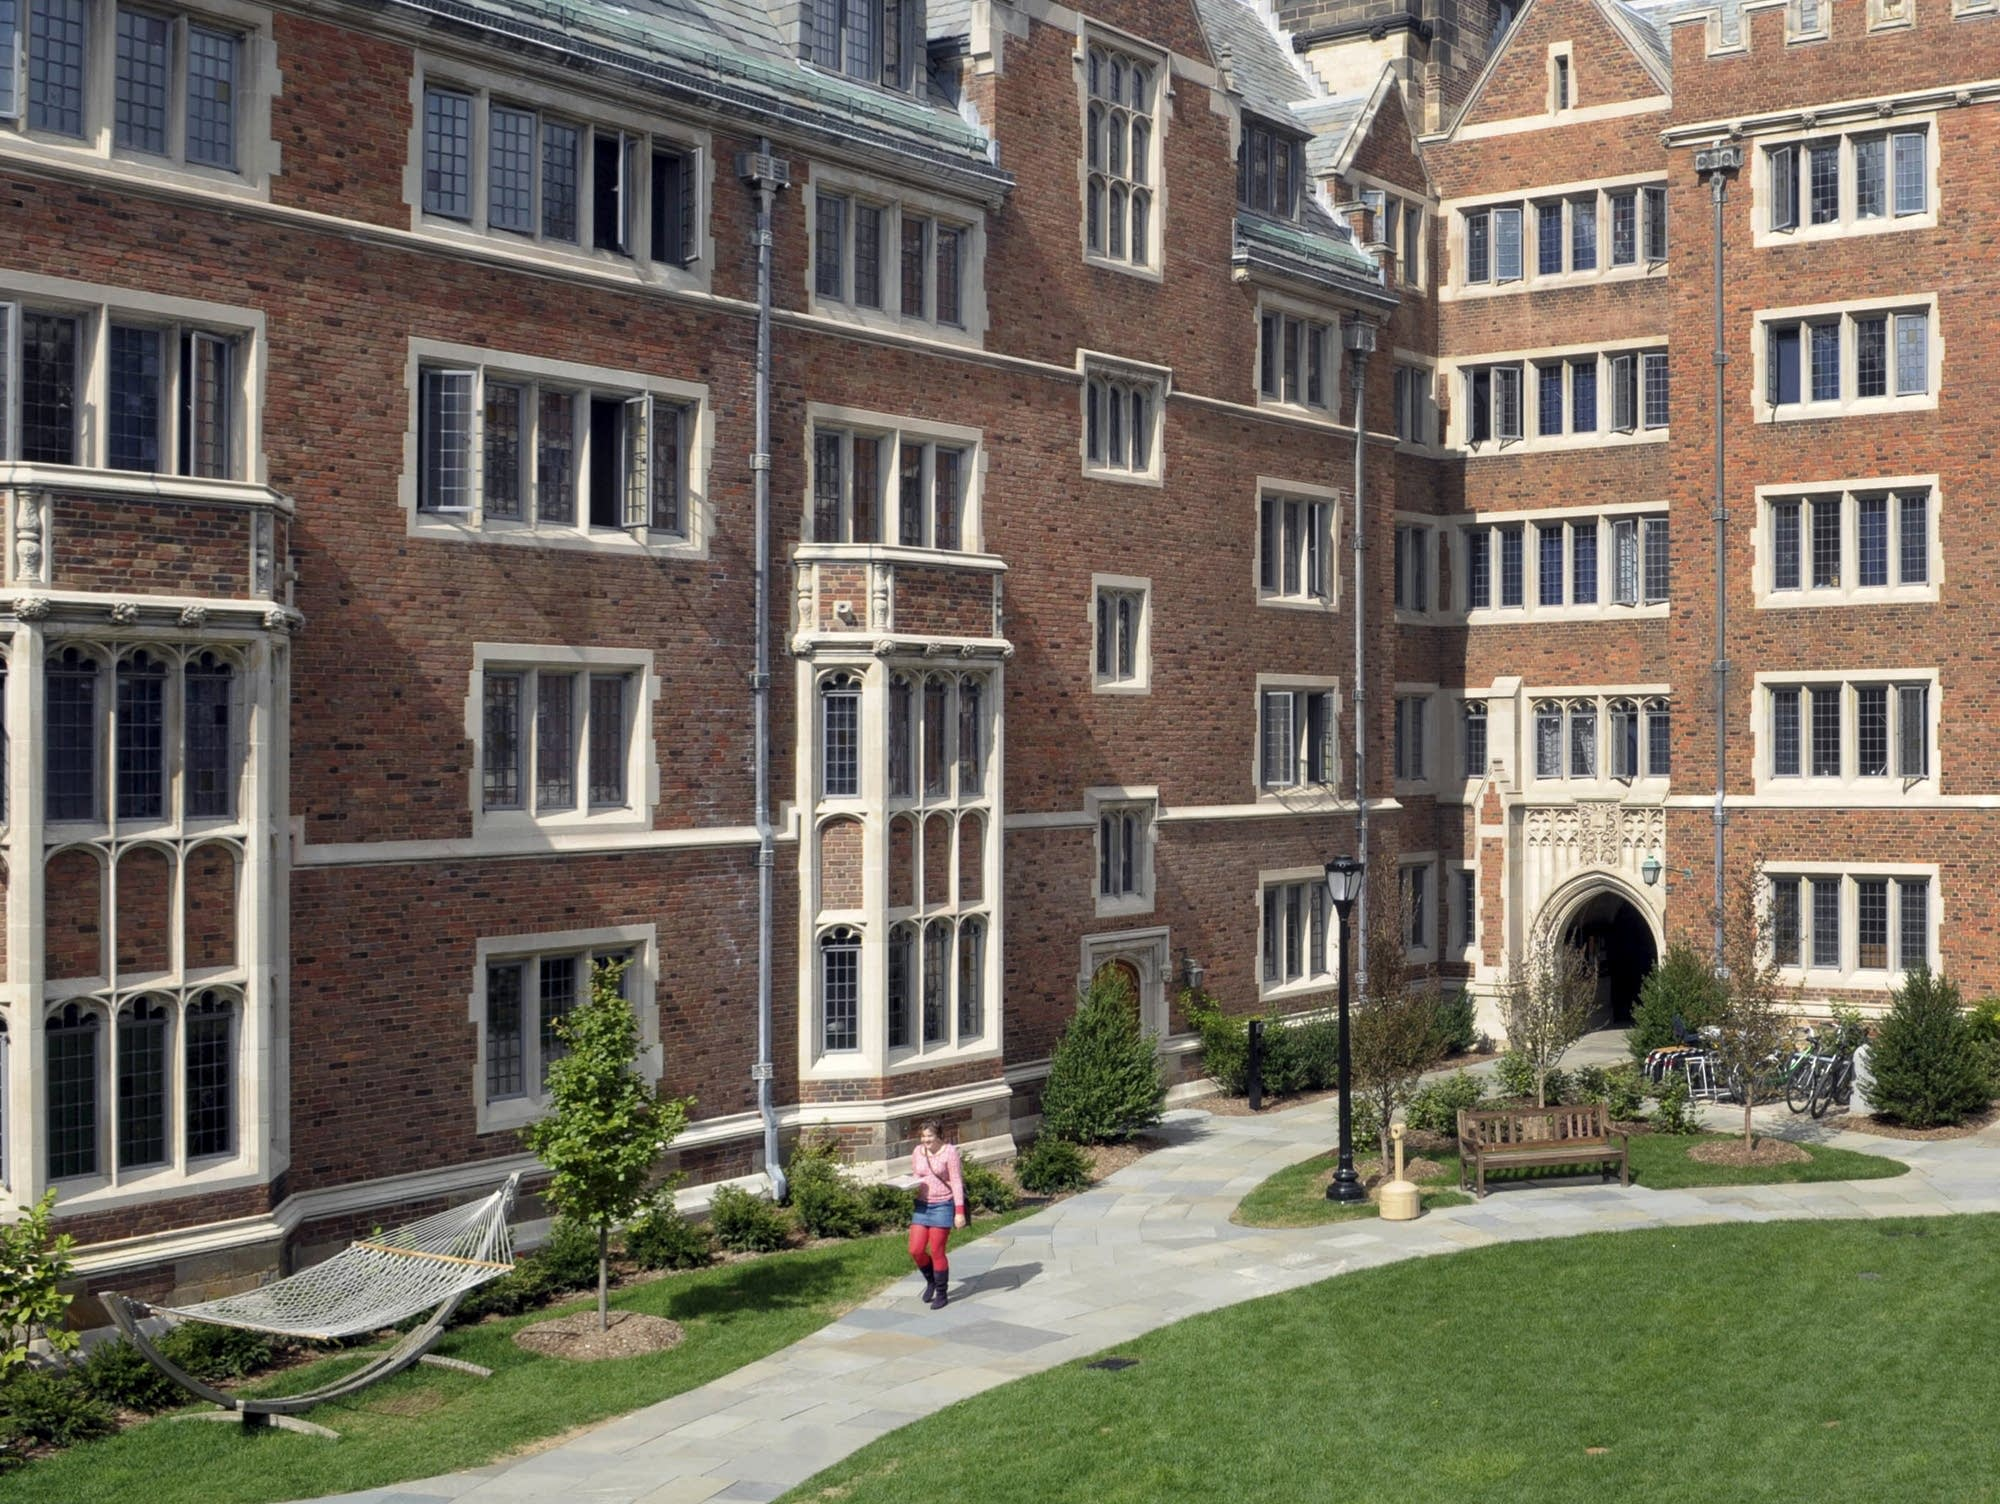 Calhoun College at Yale University will be renamed.